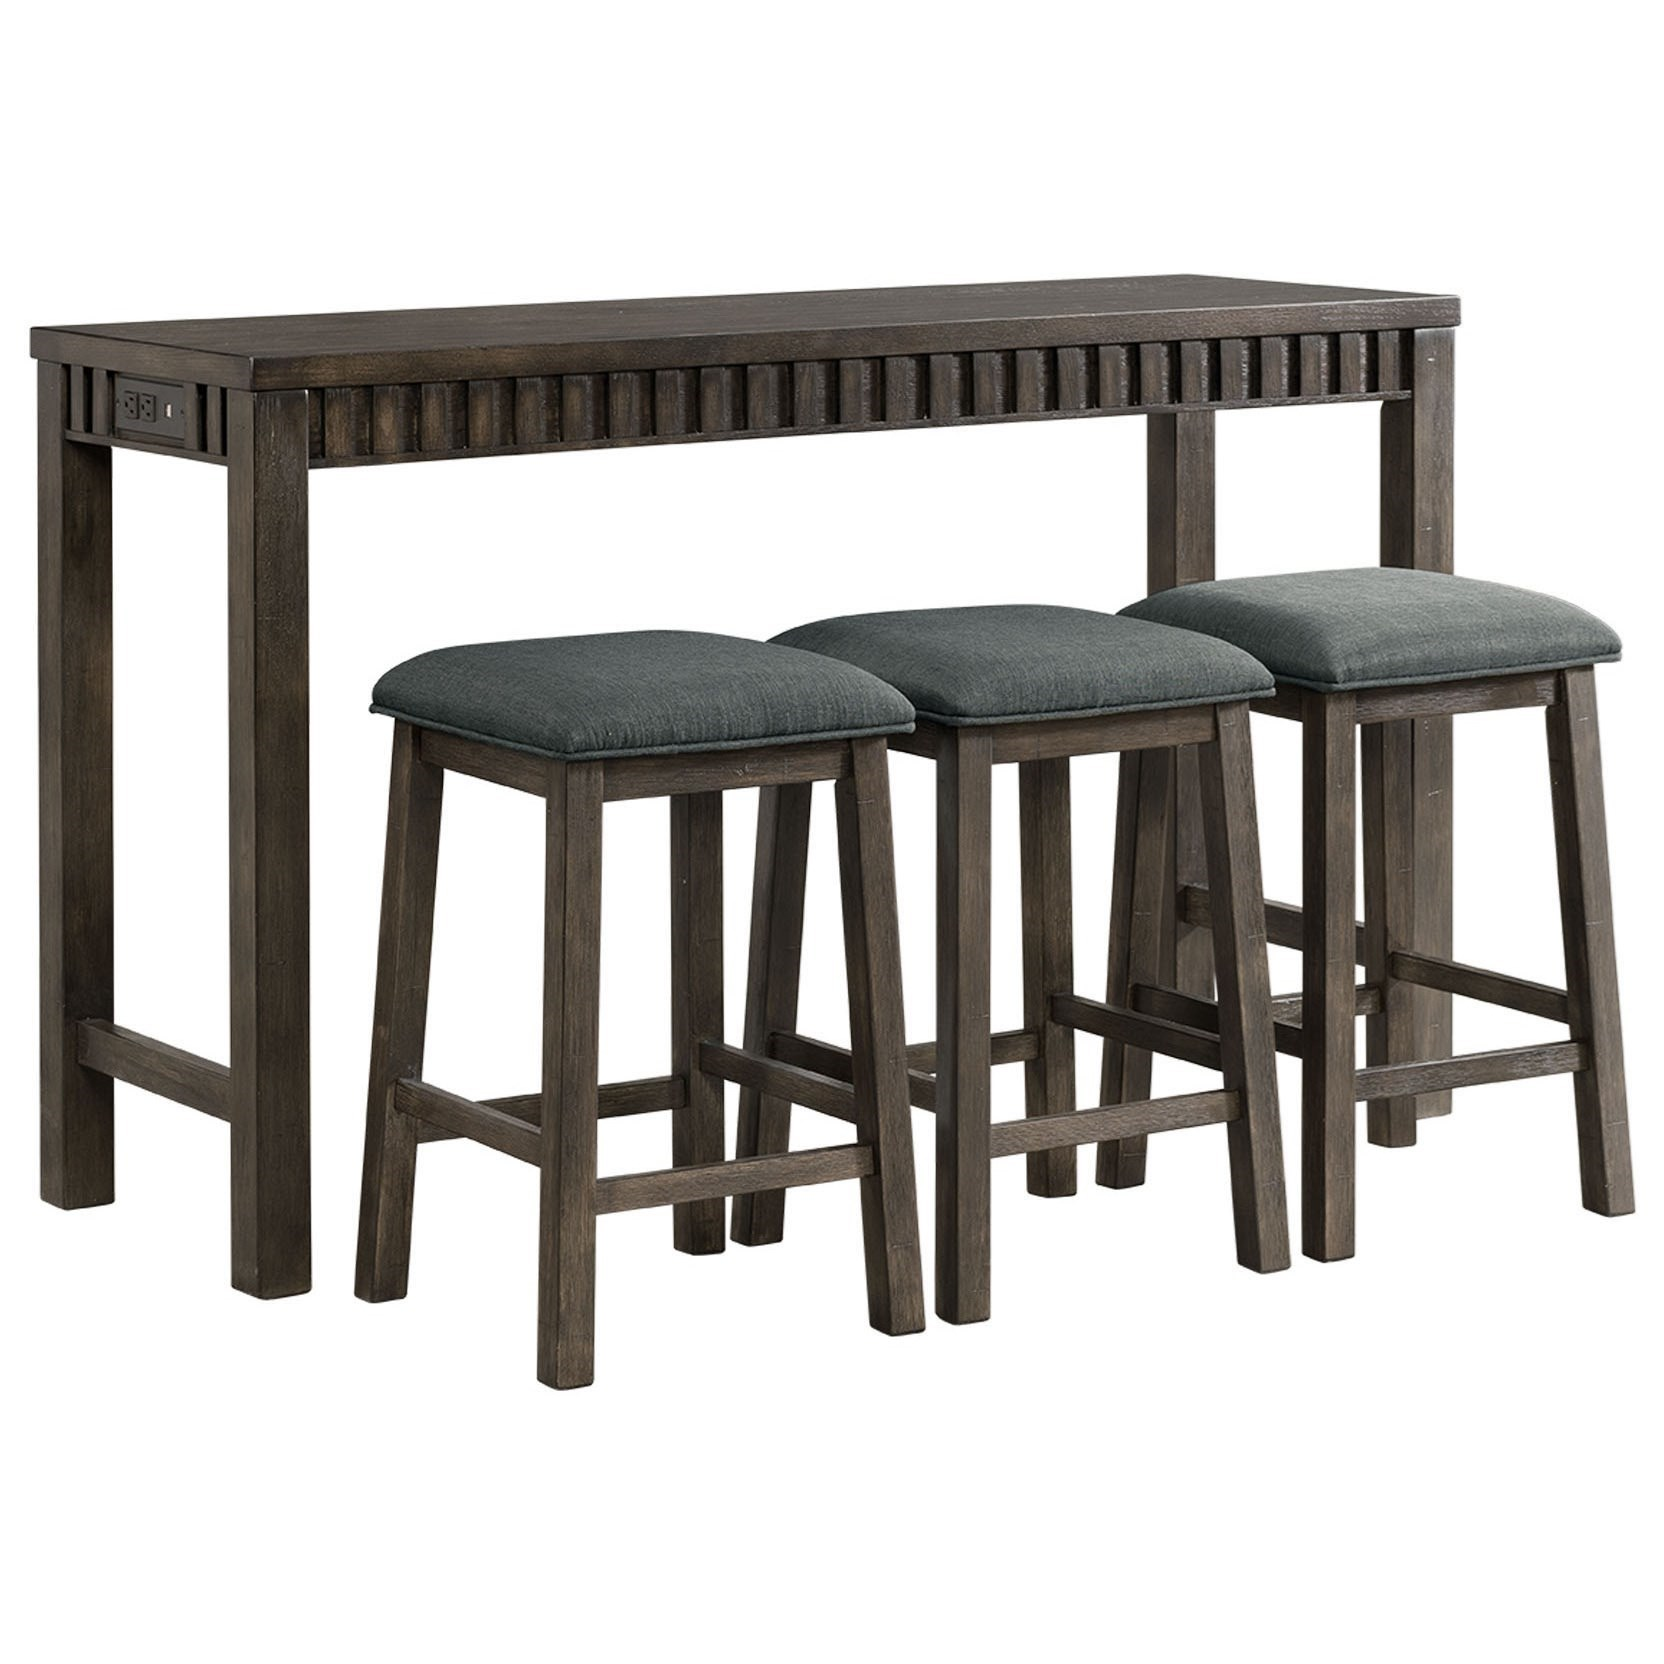 Picture of: Elements Shelter Bay Transitional Counter Height Multipurpose Bar Table Set With Usb Port Royal Furniture Pub Table And Stool Sets